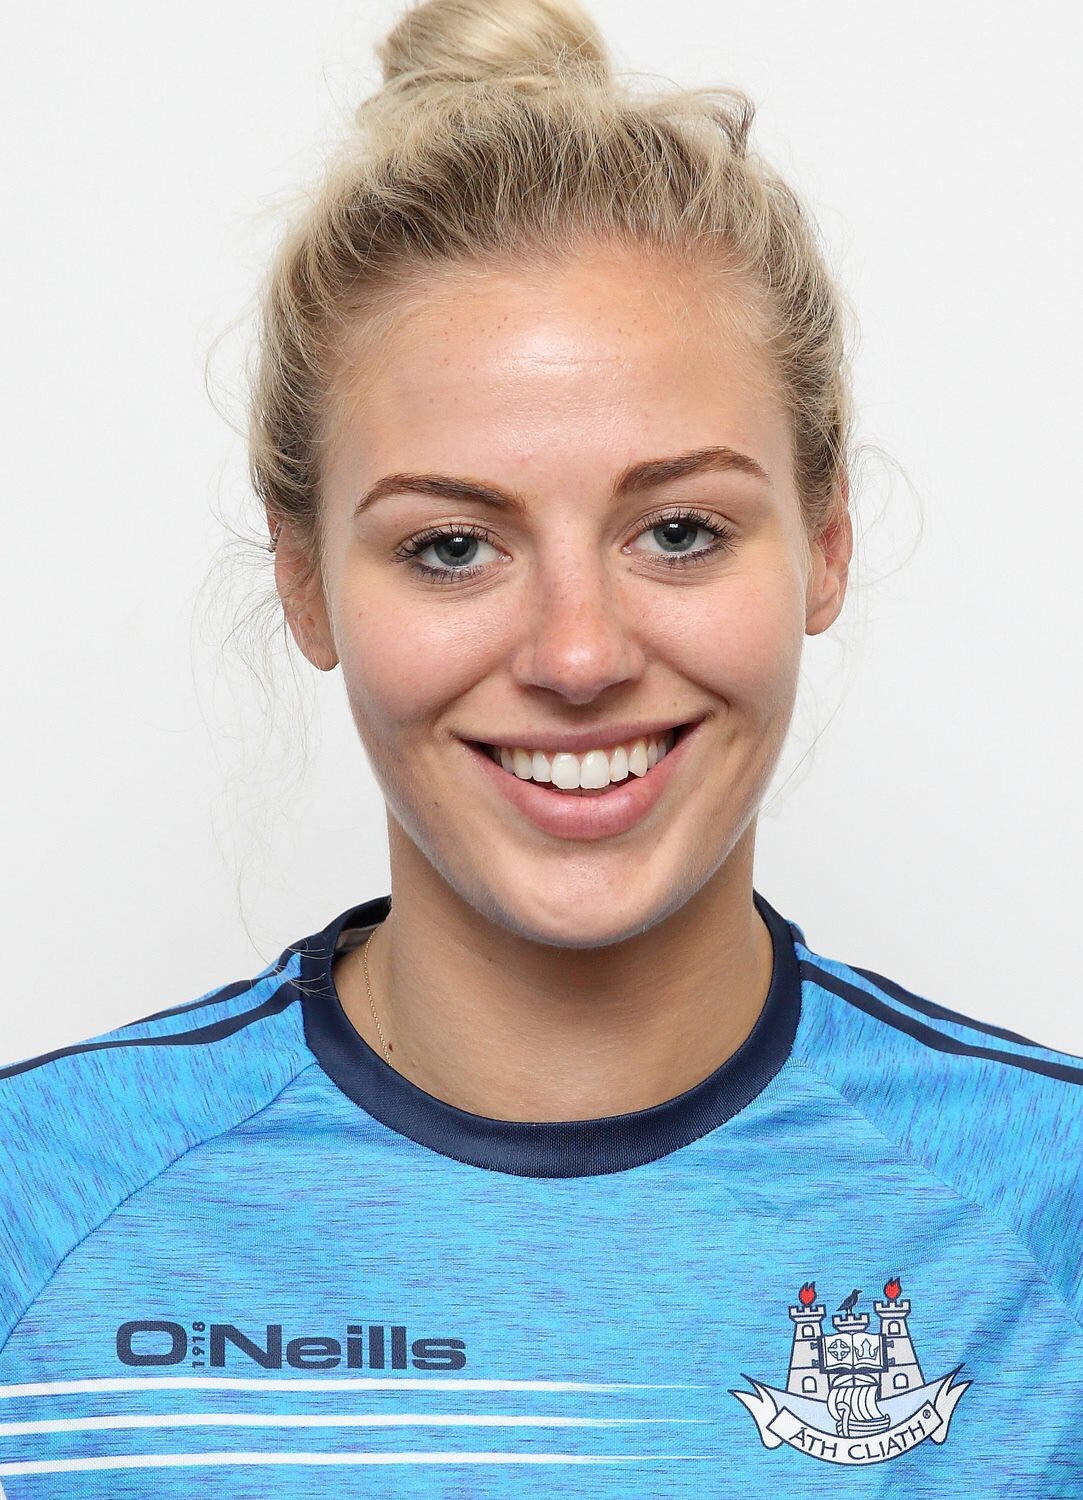 Headshot of Dublin forward Nicole Owens in a blue training top with a Dublin crest on the left hand side at the announcement that Nicole was named on the Lidl team of the league